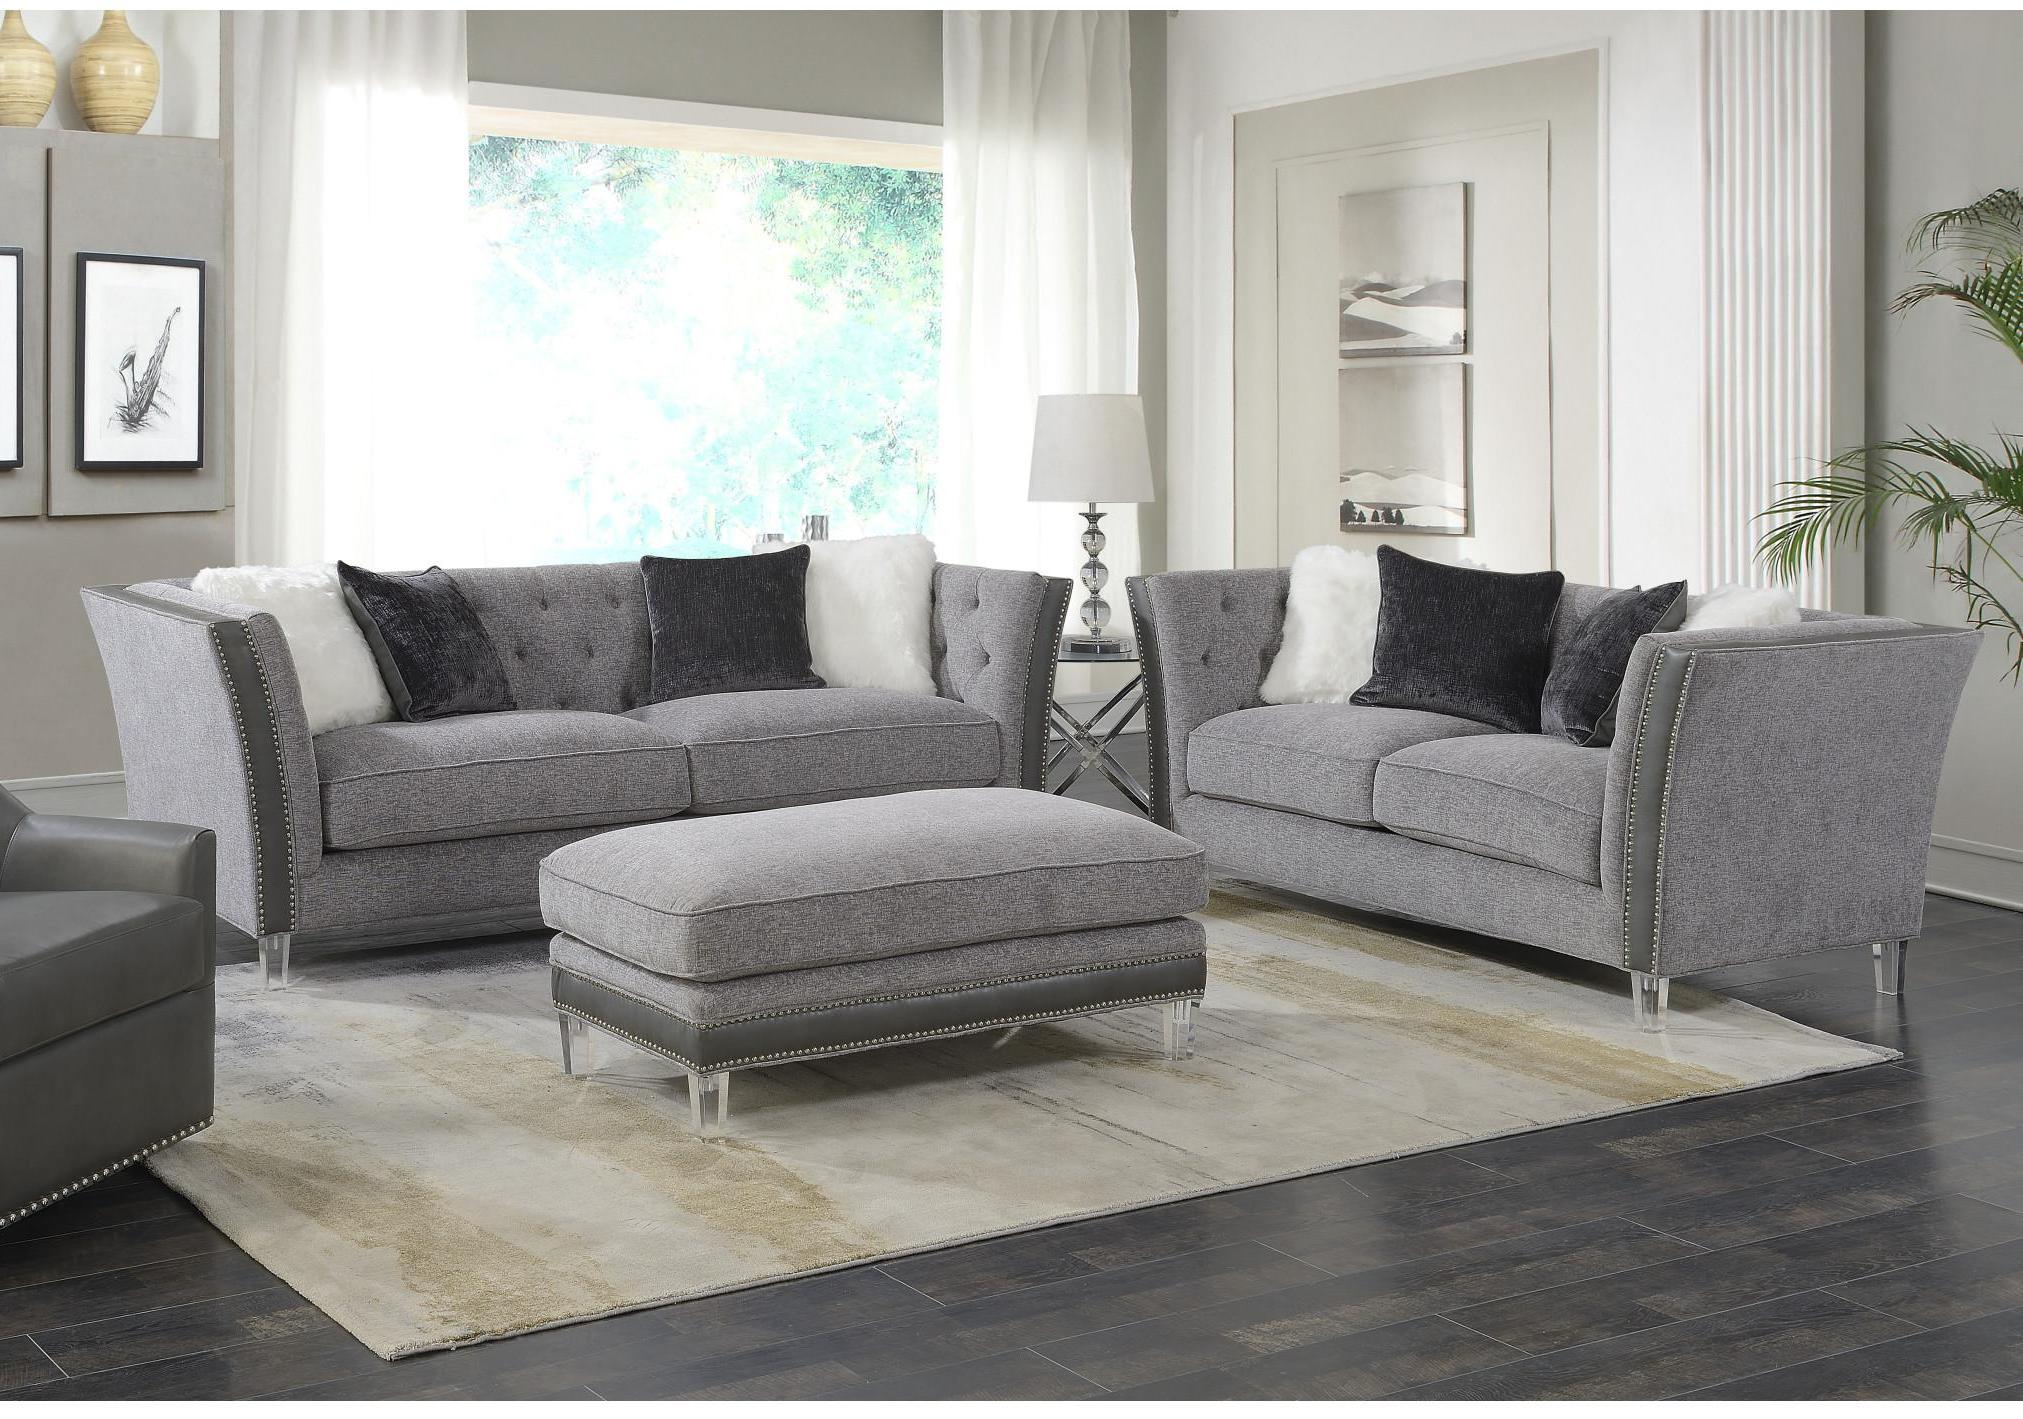 Emerald home patricia silver gray nailhead 3pc living room set click to enlarge